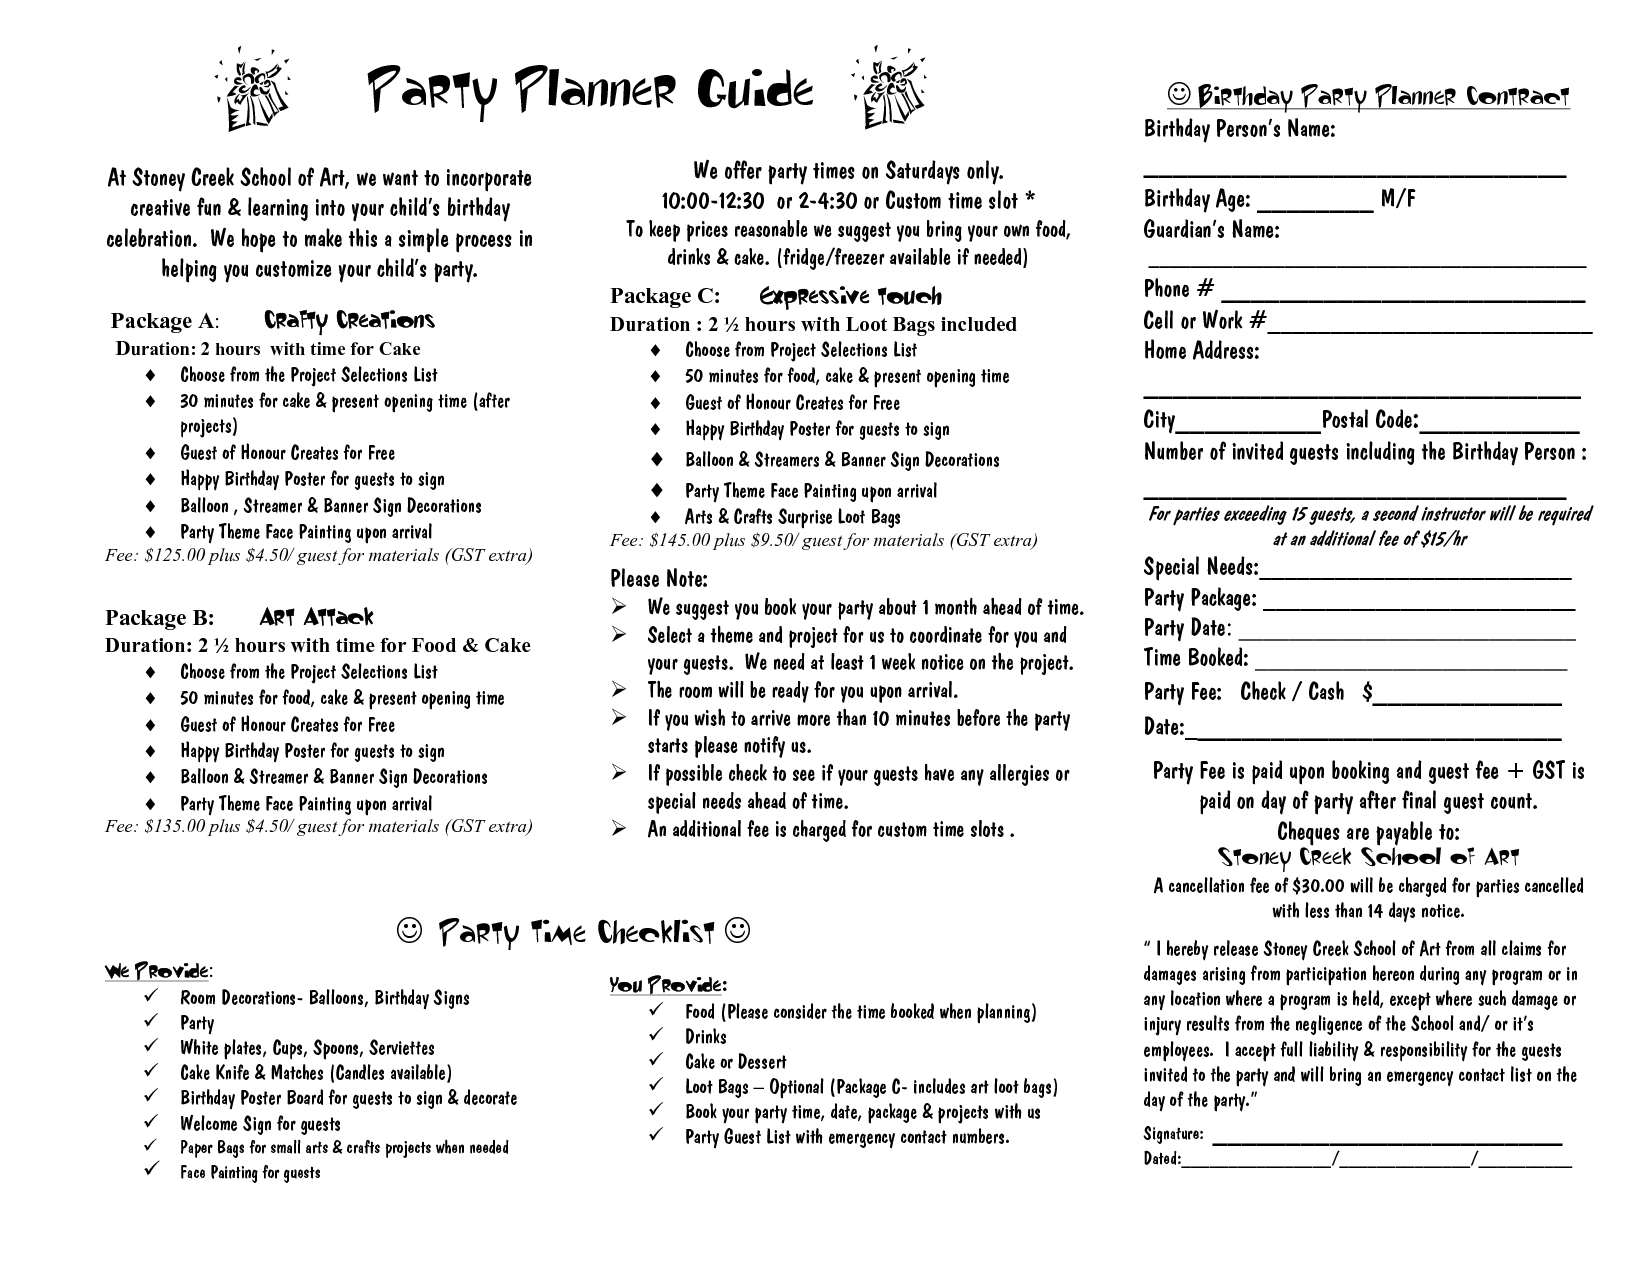 Party Planner Contract Template Google Search Event Planner 101